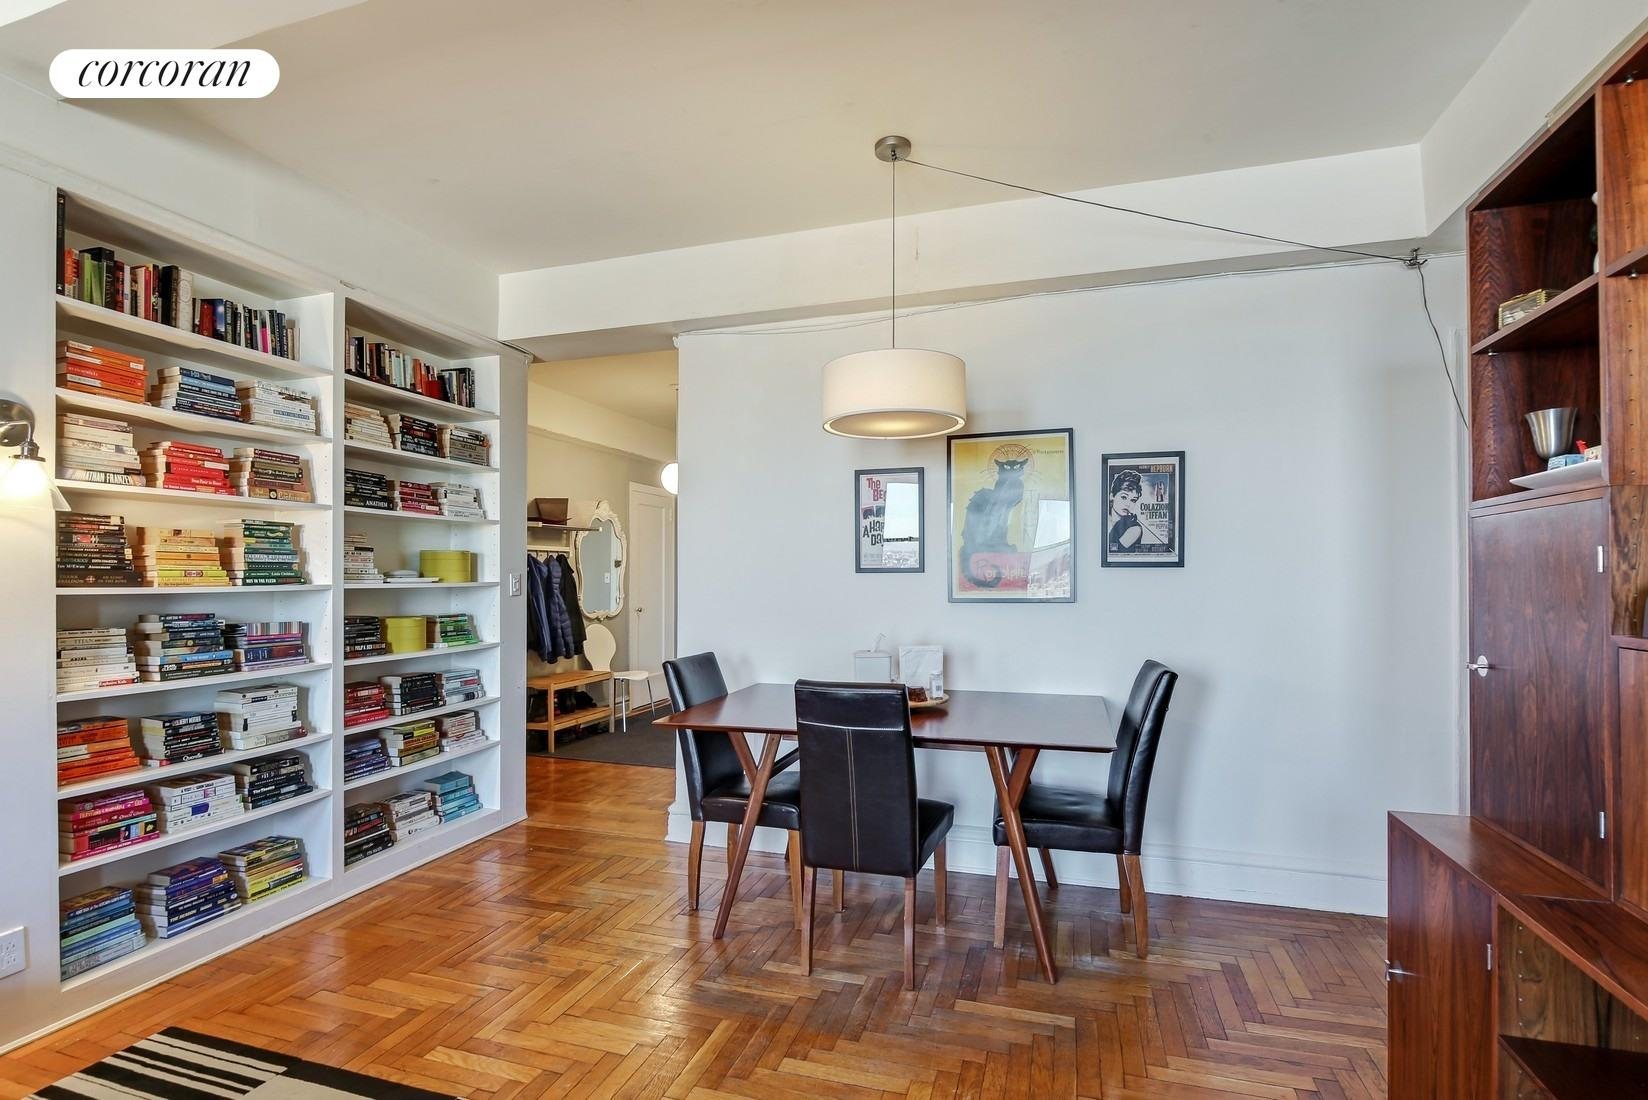 Corcoran, 135 Eastern Parkway, Apt. 7J, Prospect Heights Real Estate ...